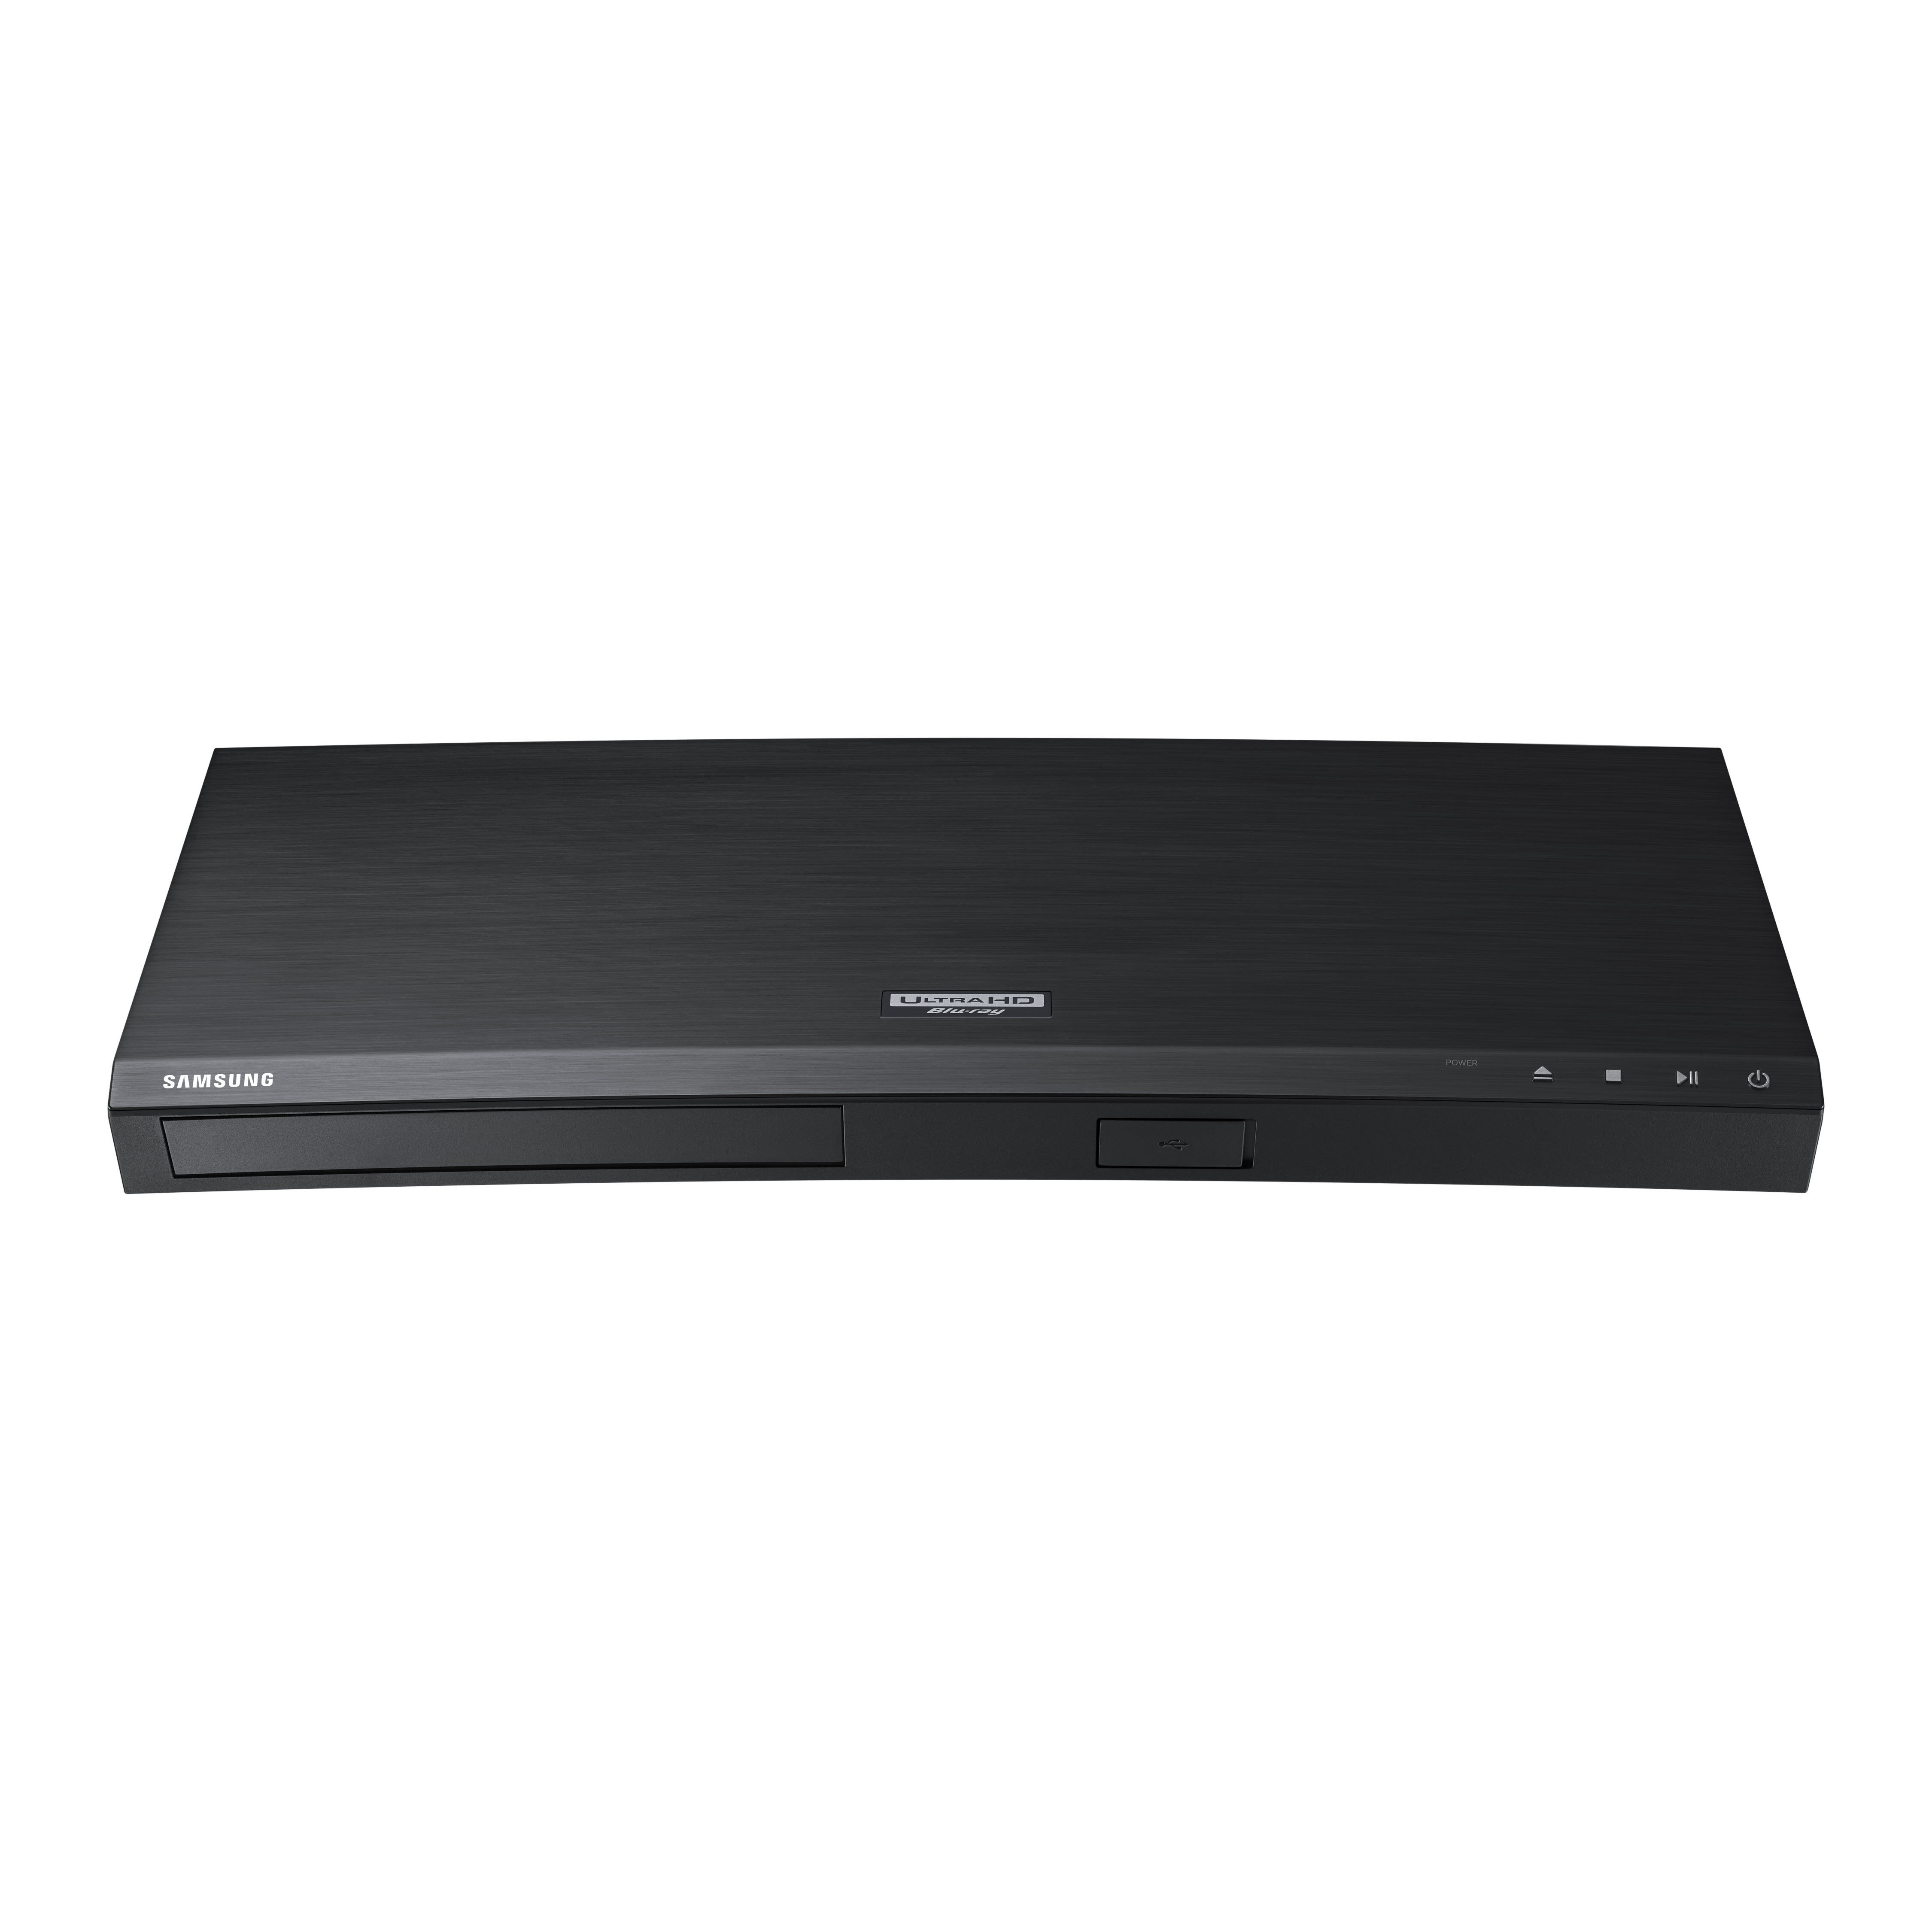 SAMSUNG 4K Ultra-HD Blu-ray & DVD Player with HDR and WiFi Streaming UBD-M7500 by Samsung